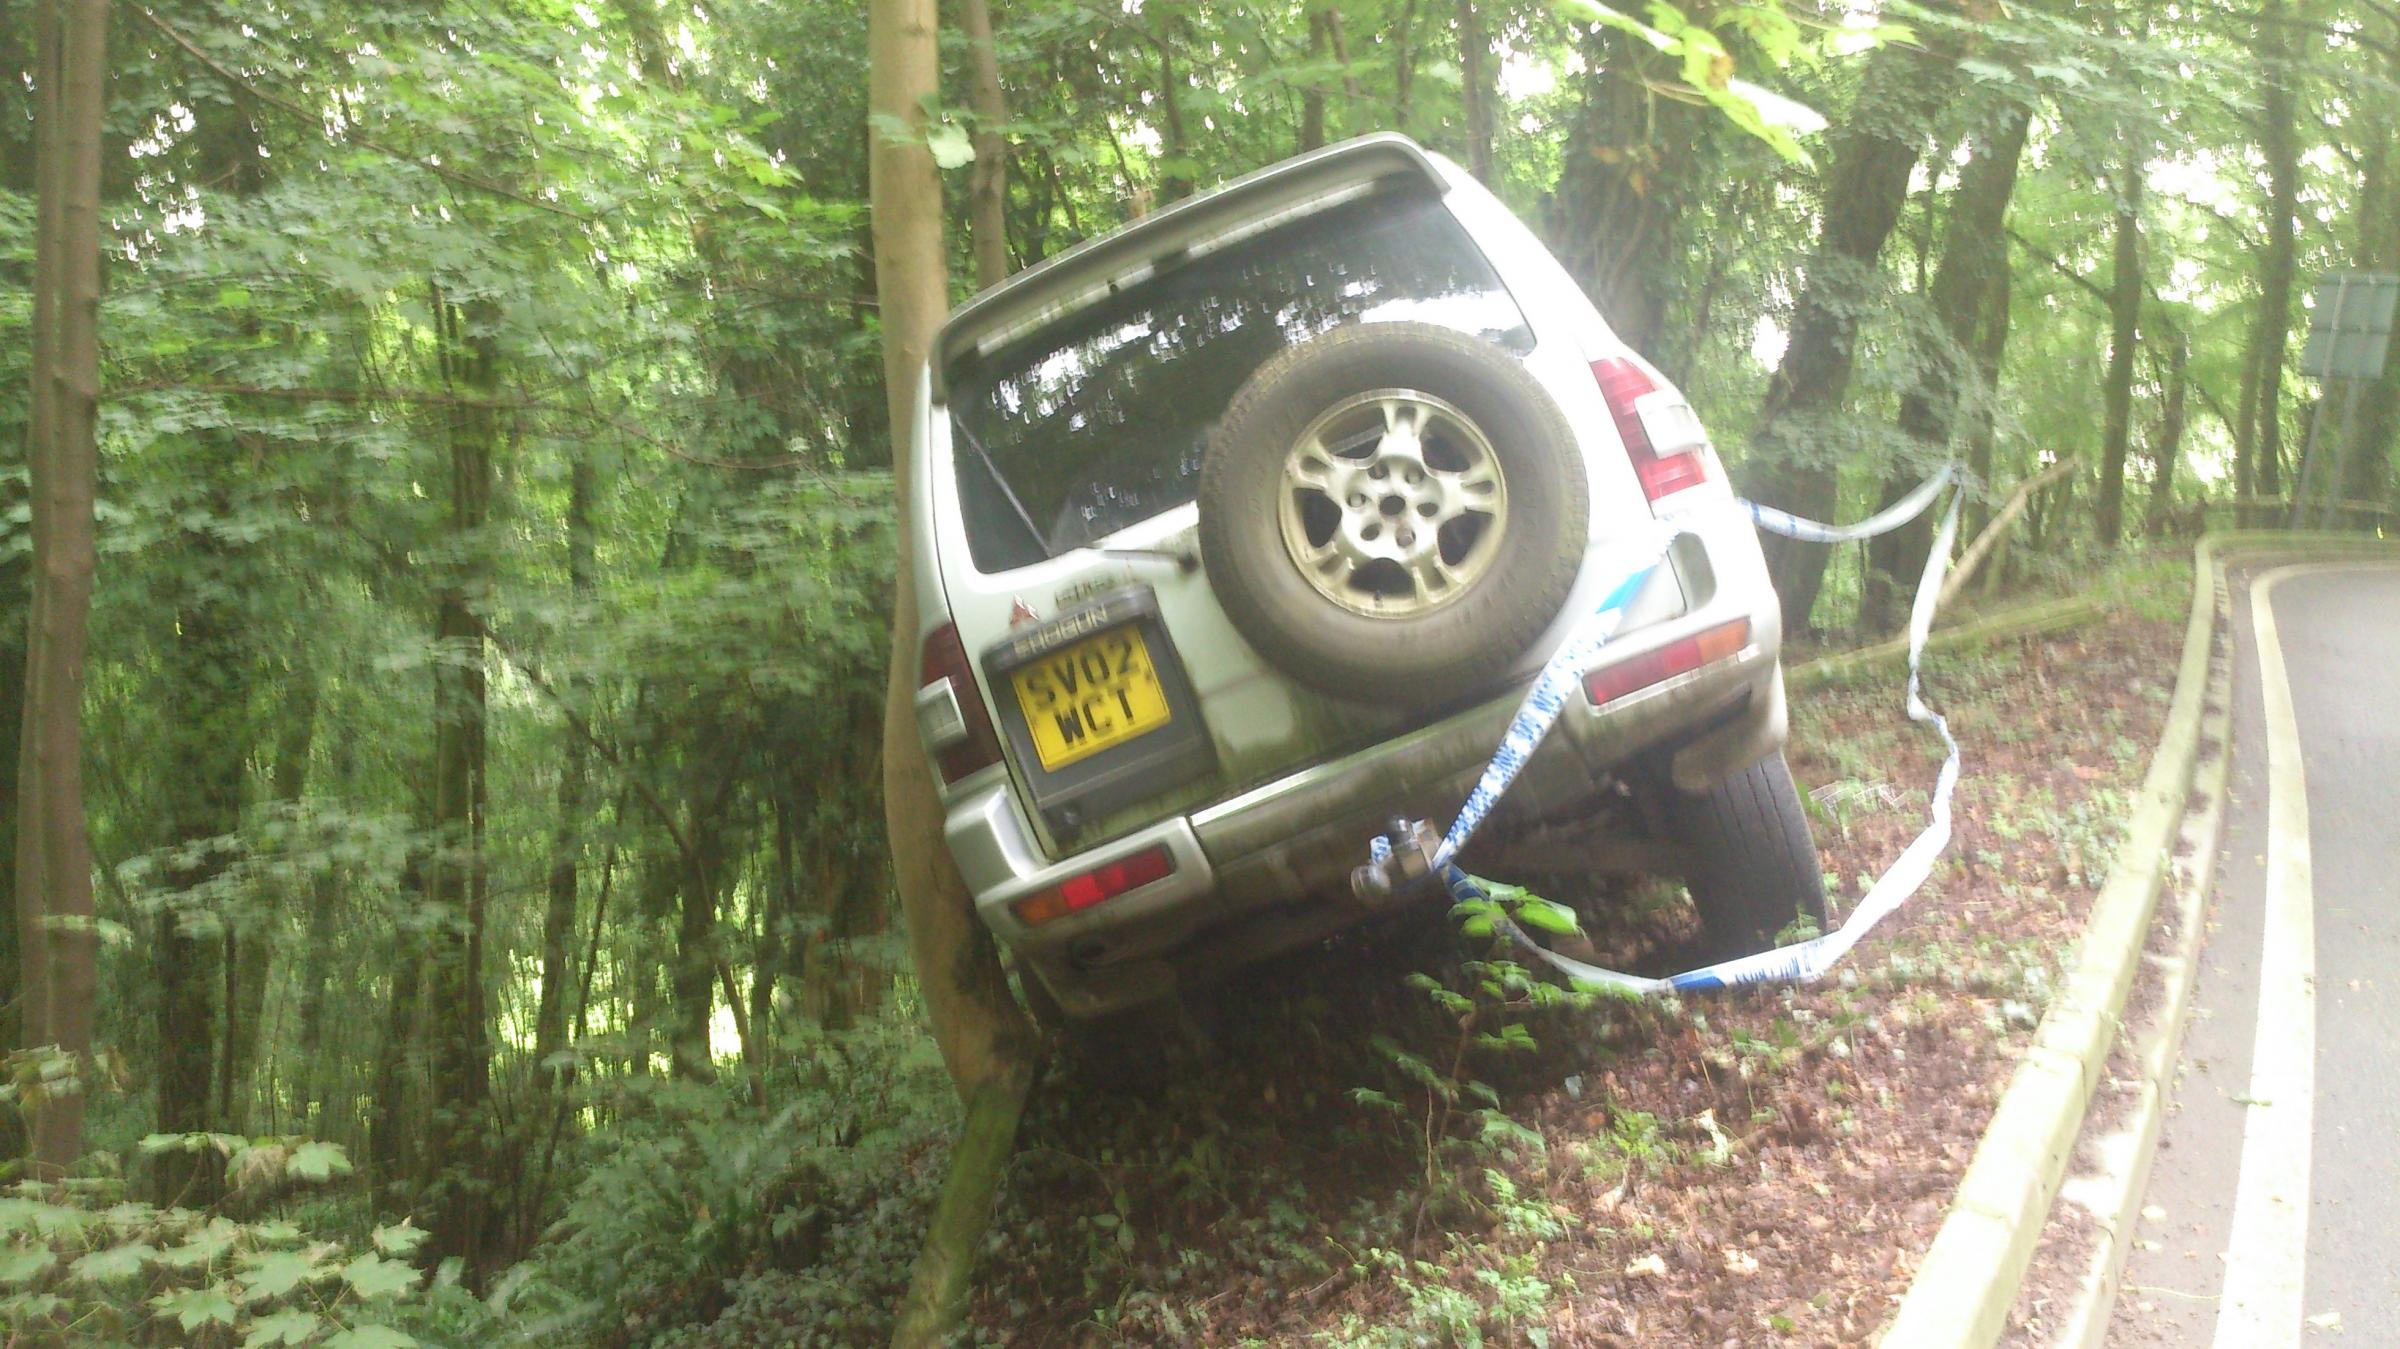 VIDEO: 4X4 recovered from edge of steep drop in Dursley